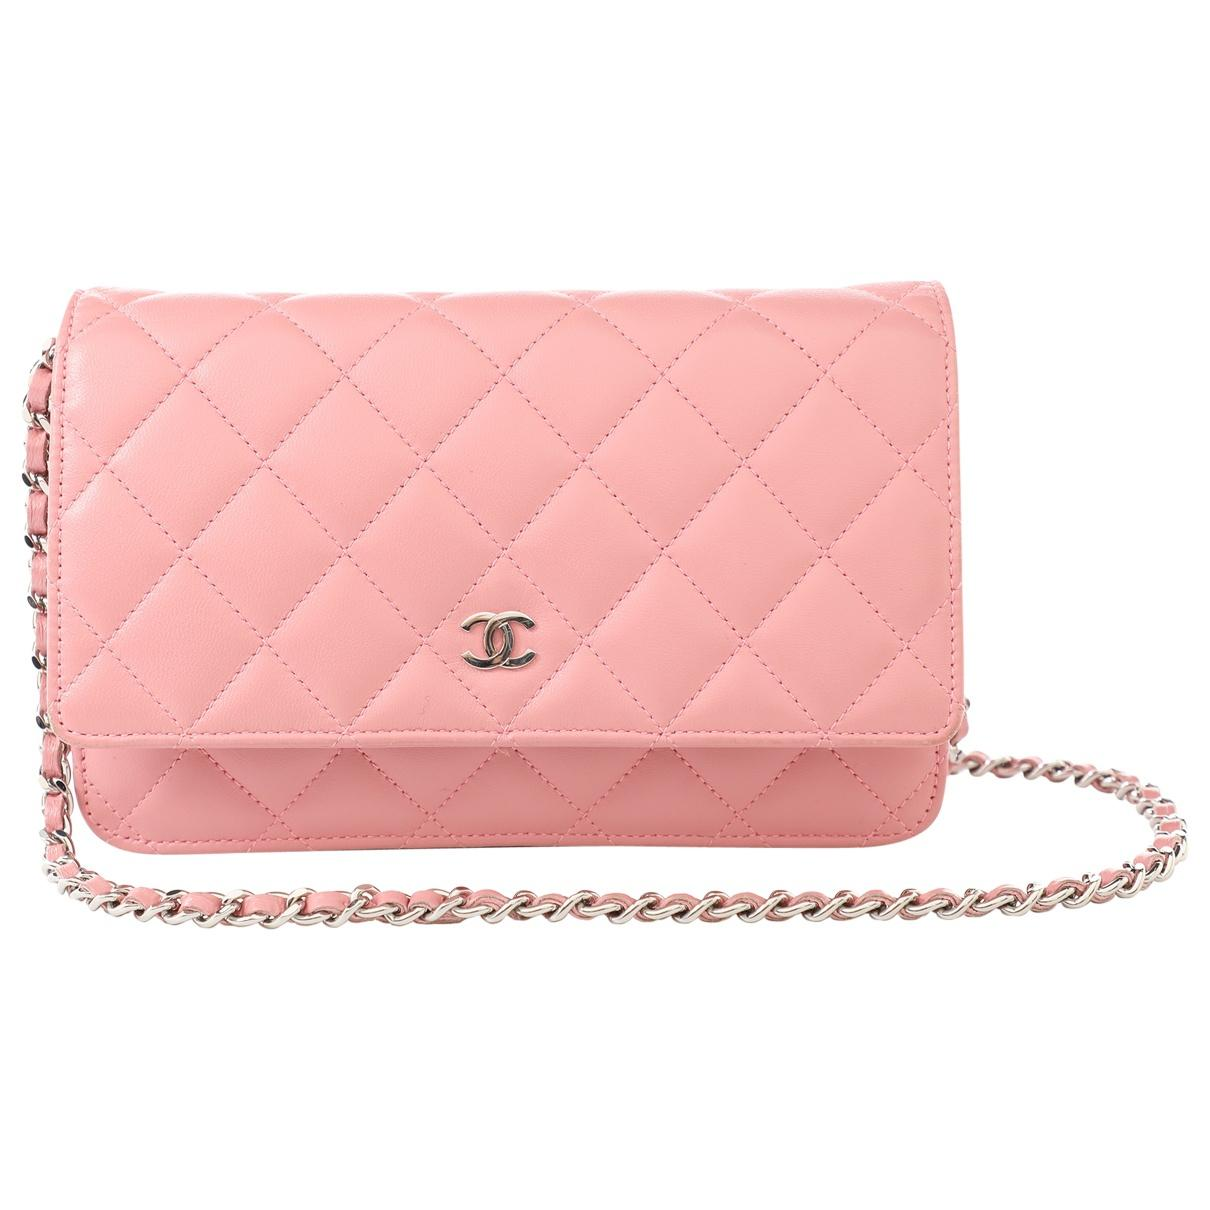 Lyst - Chanel Wallet On Chain Pink Leather Clutch Bag in Pink fa8eb8b510